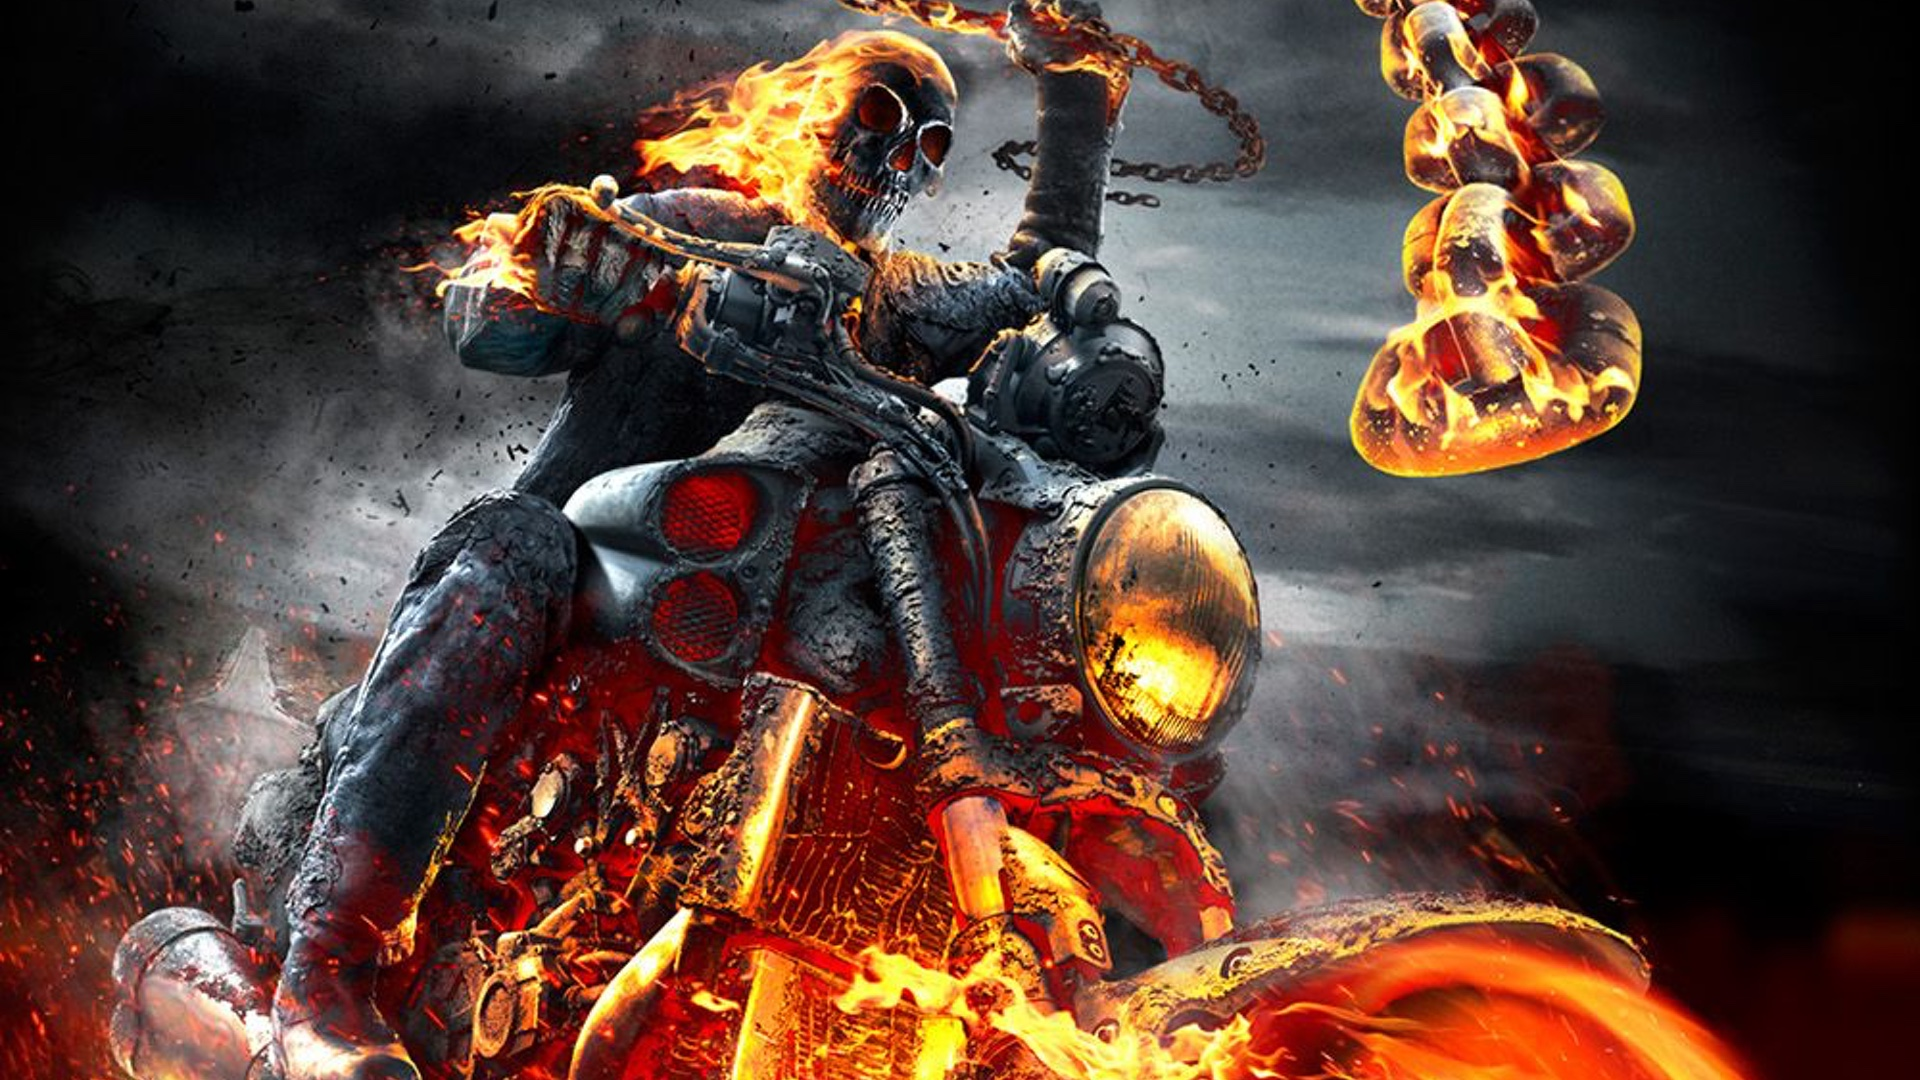 Nicolas Cage Says an R-Rated GHOST RIDER Film Would Be